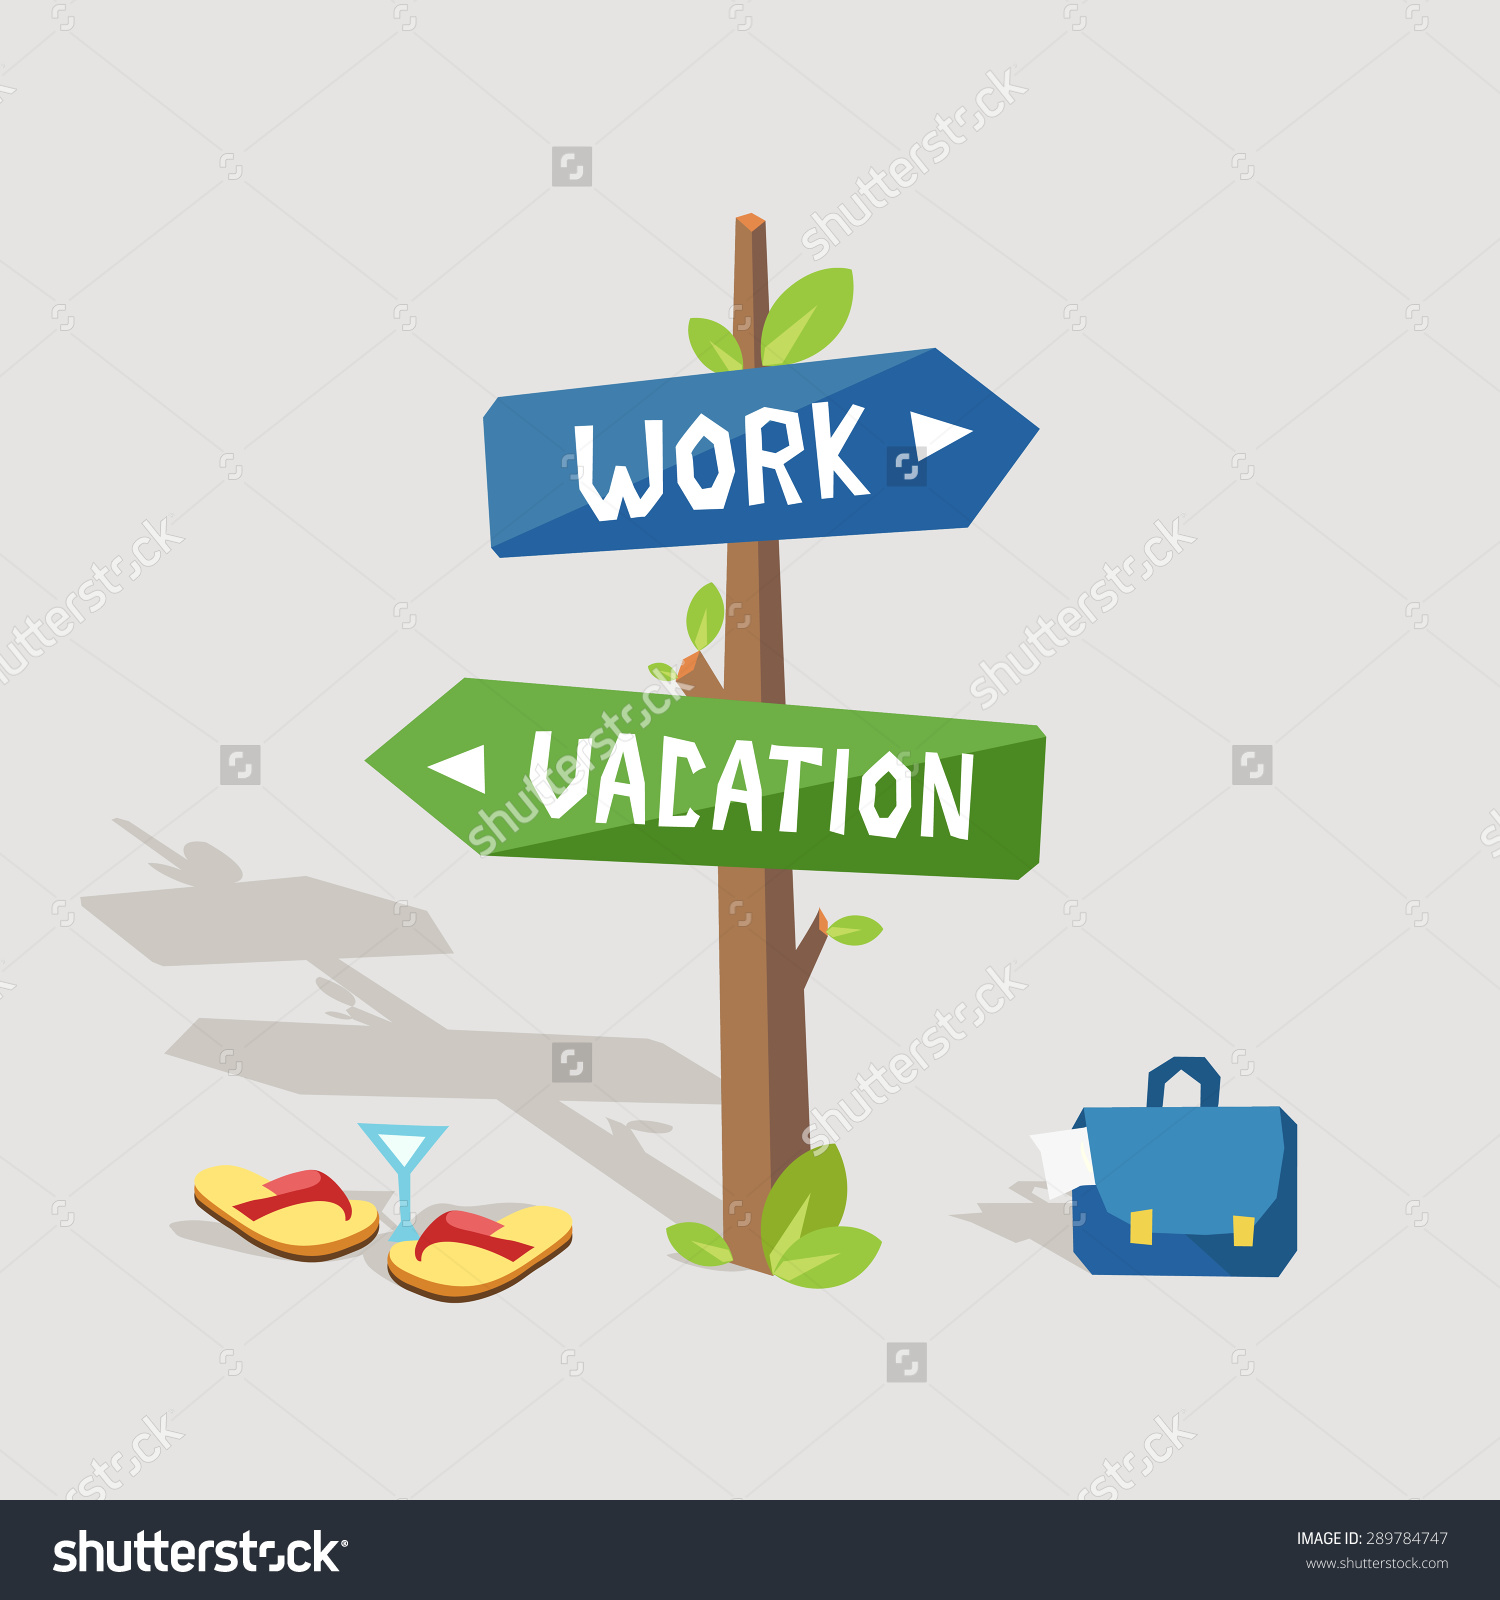 Vacation from work clipart clipart transparent stock Work Vacation Road Sign Words Work Stock Vector 289784747 ... clipart transparent stock